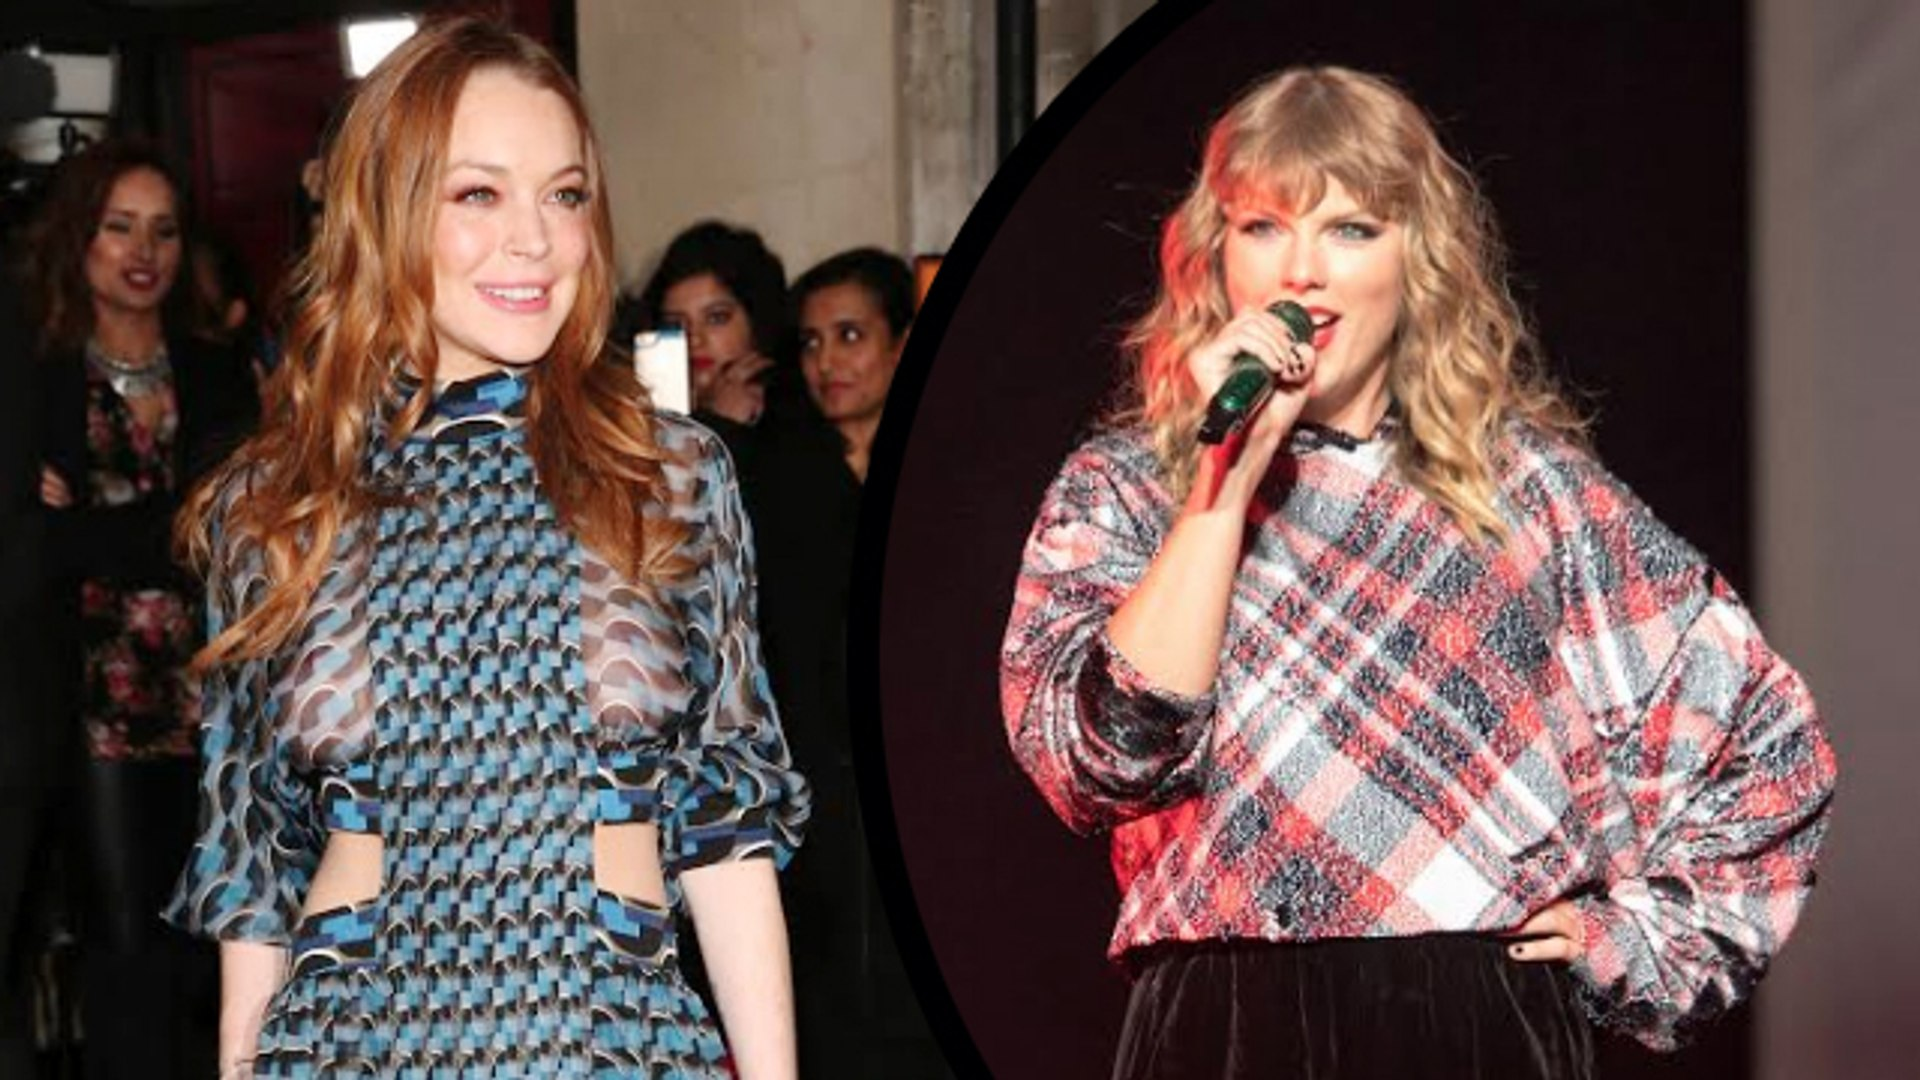 WHAT! Lindsay Lohan Begs For Taylor Swift's Attention During Live Stream!